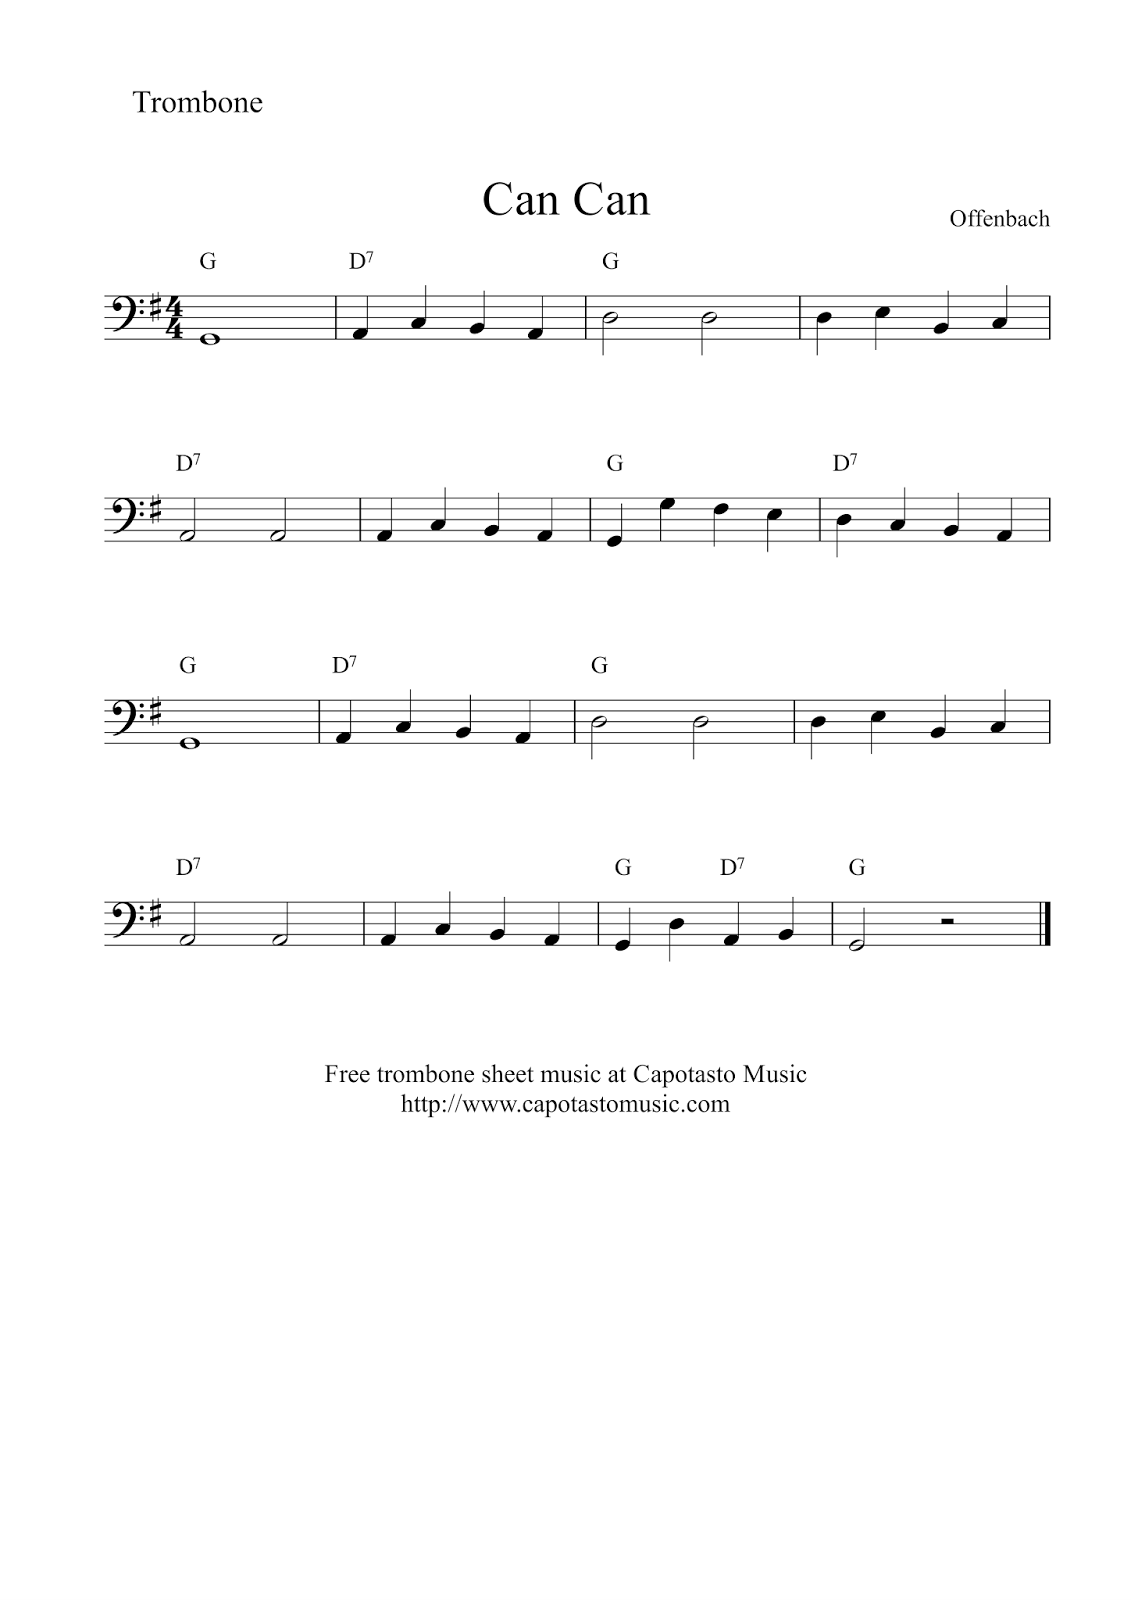 Agile image for free printable trombone sheet music